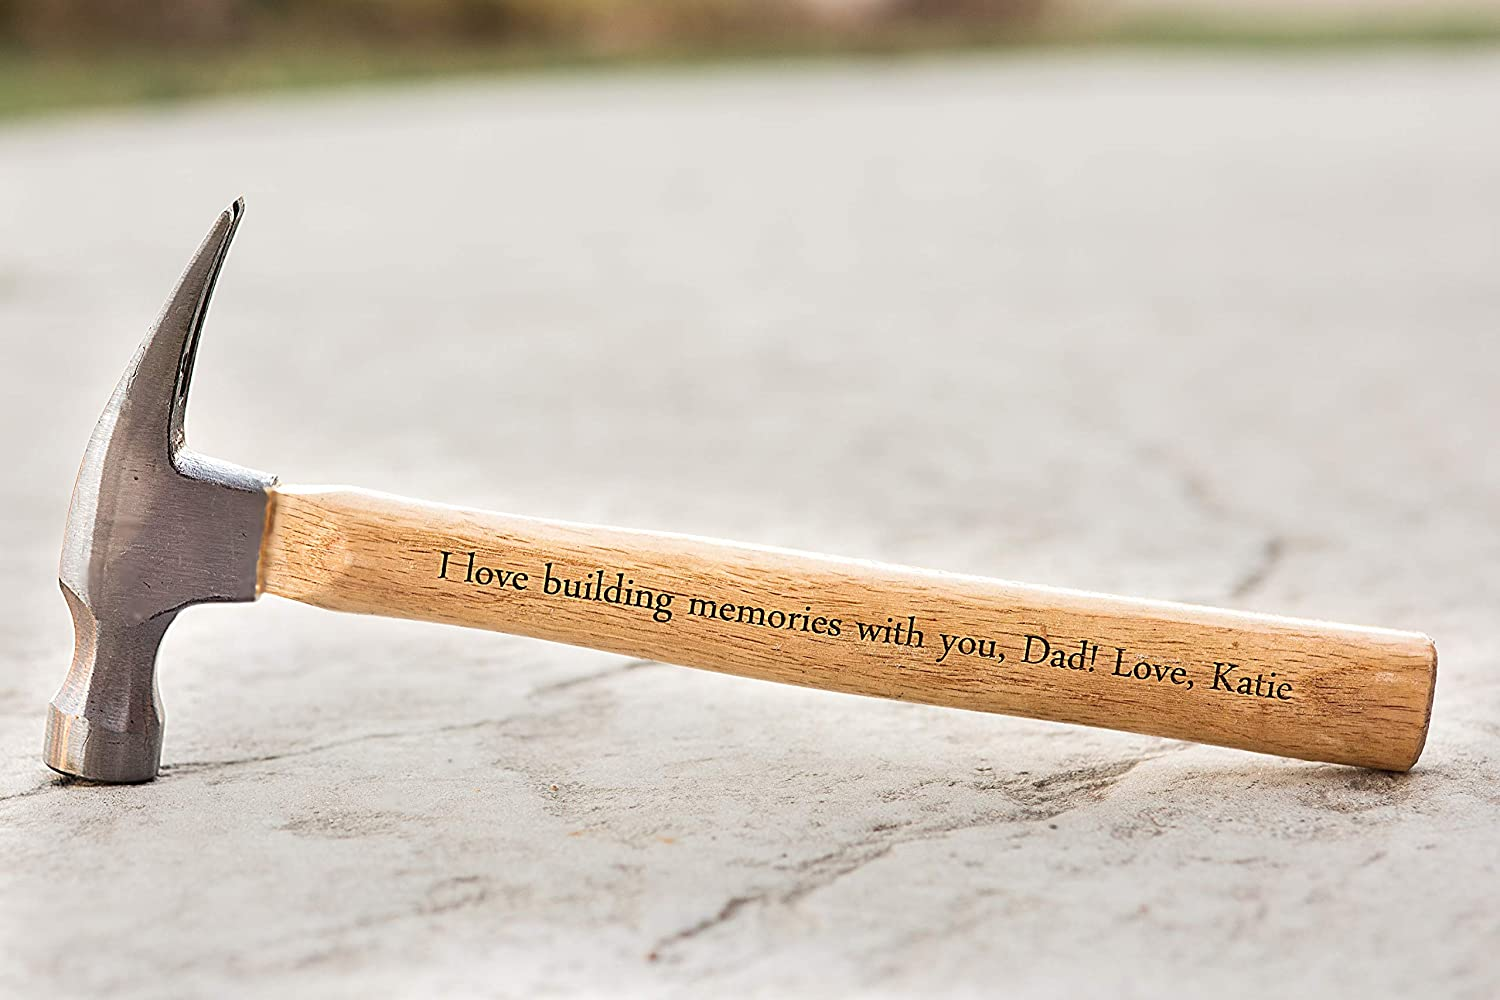 Personalized Dad Gifts from Daughter - Personalized Engraved Hammer  Birthday Gift for Fathers and Grandpa (World s best grandpa since) - -  Amazon.com 2cab3467c